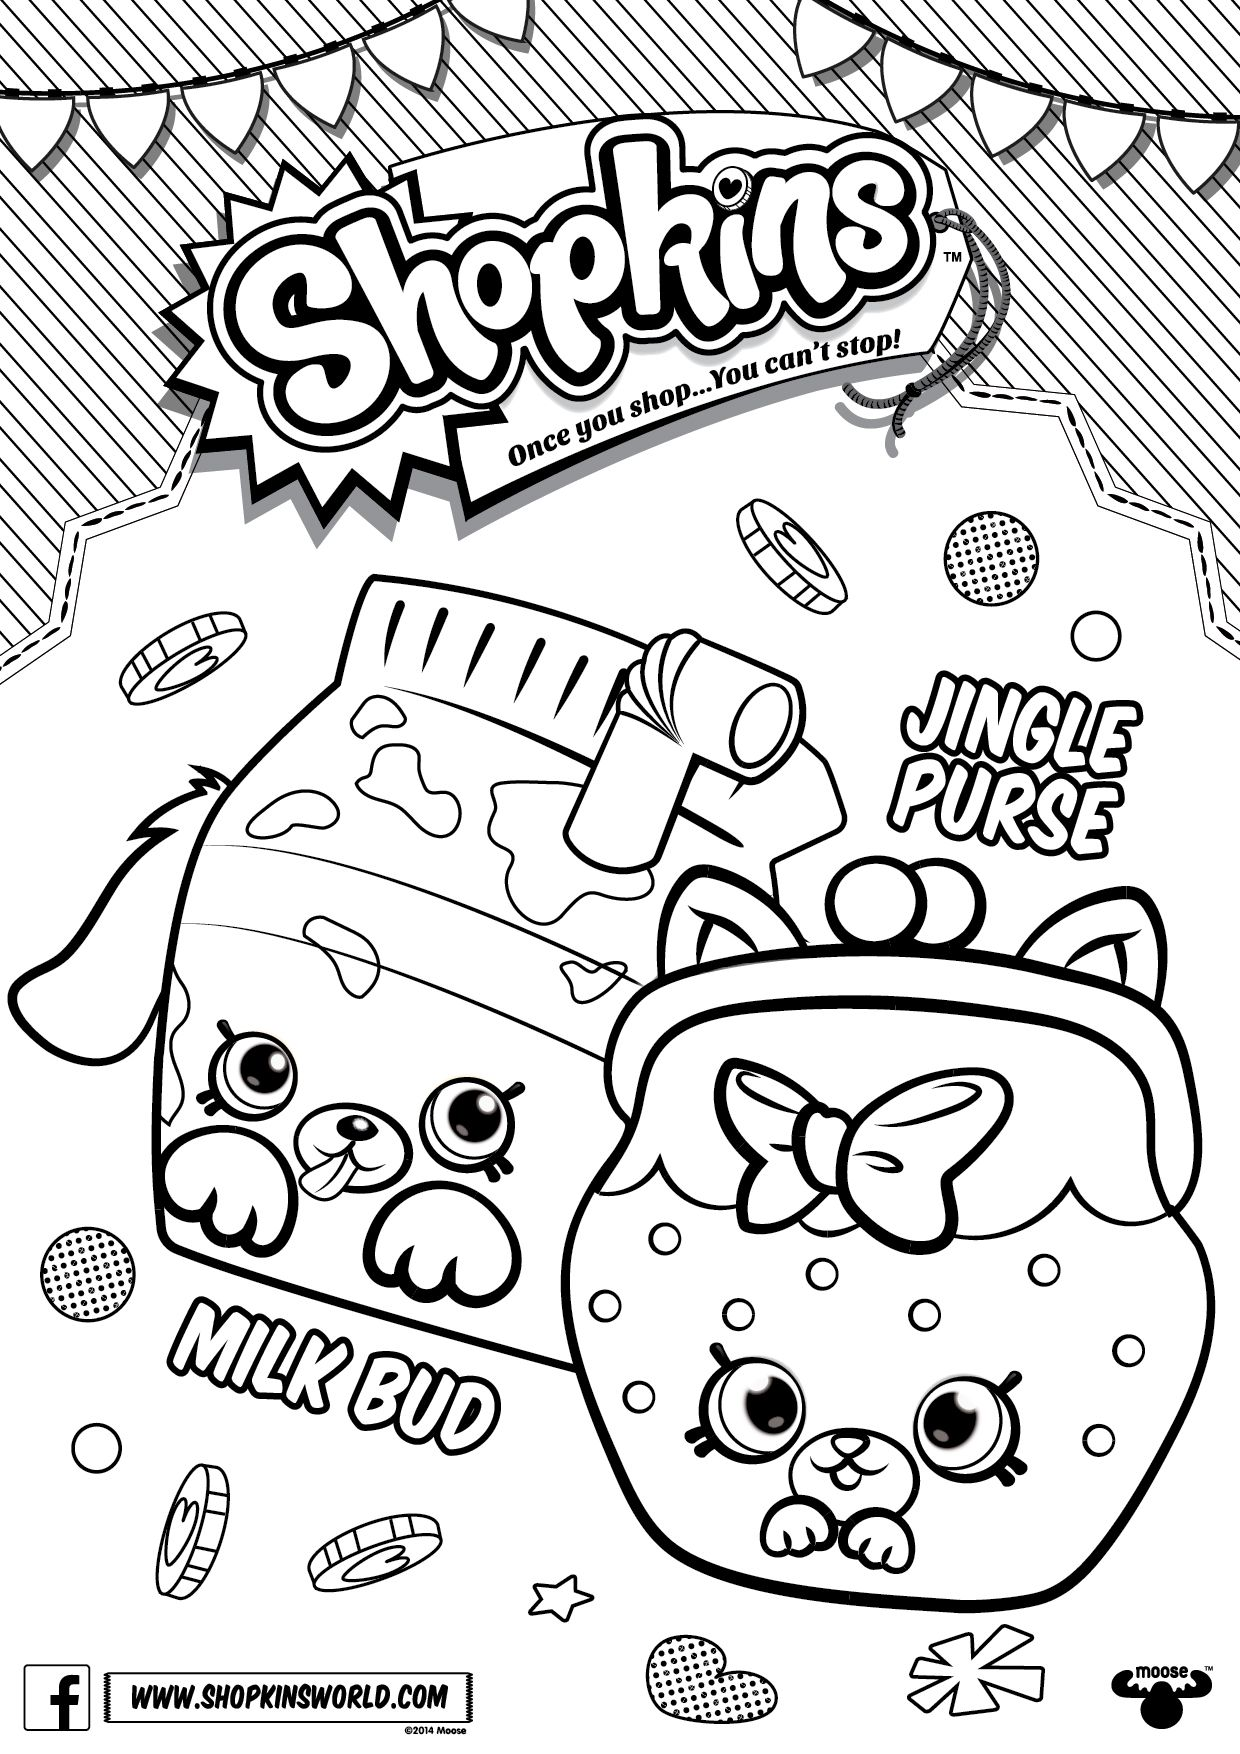 Shopkins coloring pages season 5 shopkins awesome printable coloring - Shopkins Coloring Pages Season 4 Petkins Jingle Purse Milk Bud